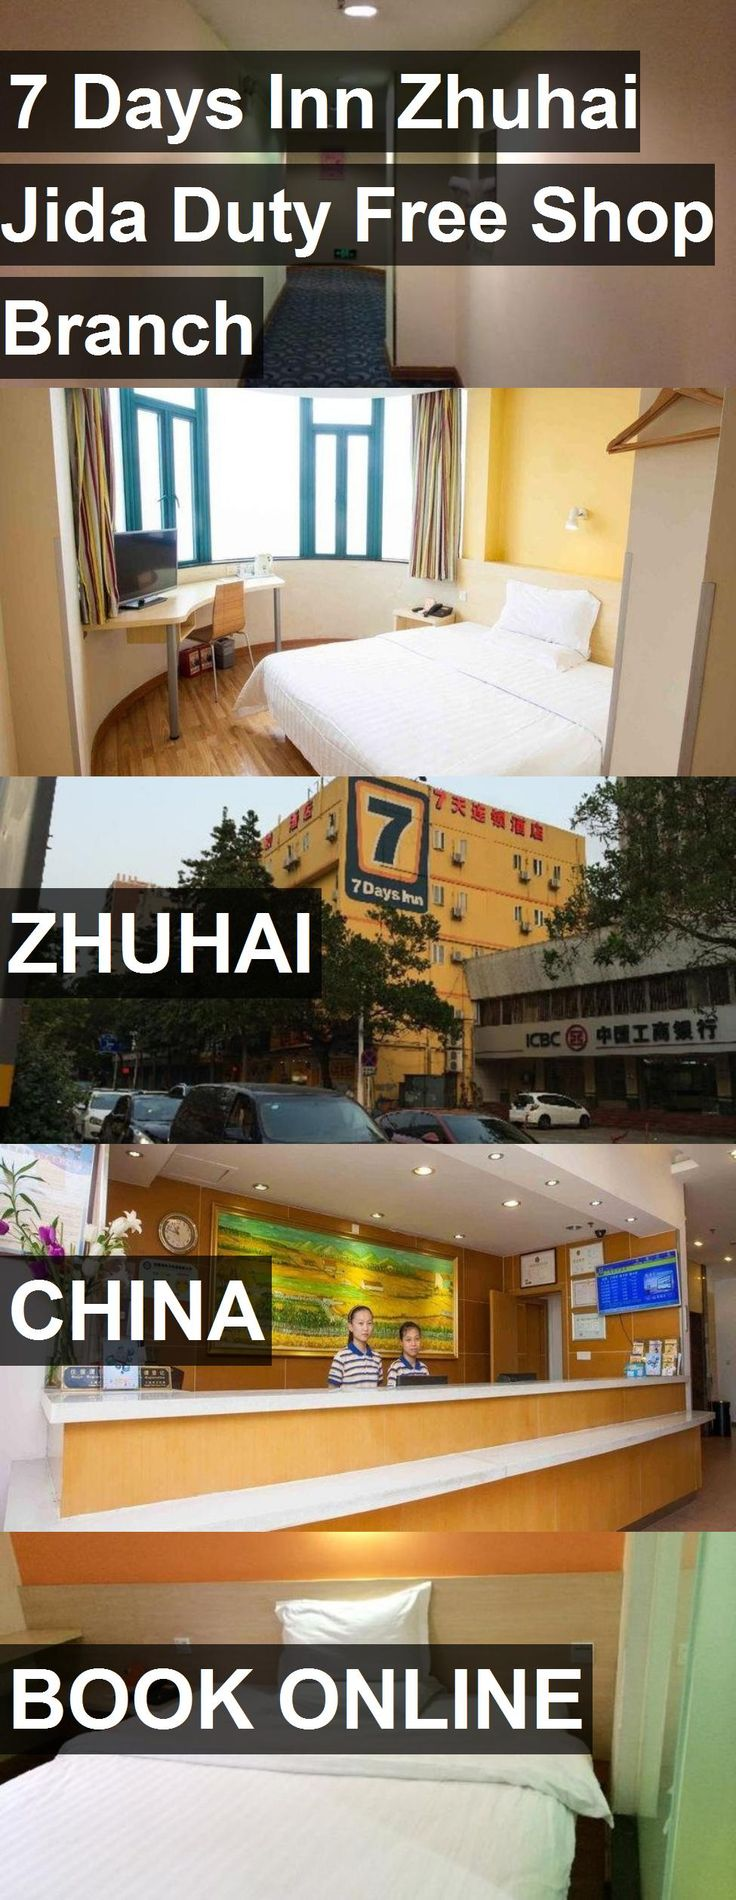 Hotel 7 Days Inn Zhuhai Jida Duty Free Shop Branch in Zhuhai, China. For more information, photos, reviews and best prices please follow the link. #China #Zhuhai #hotel #travel #vacation